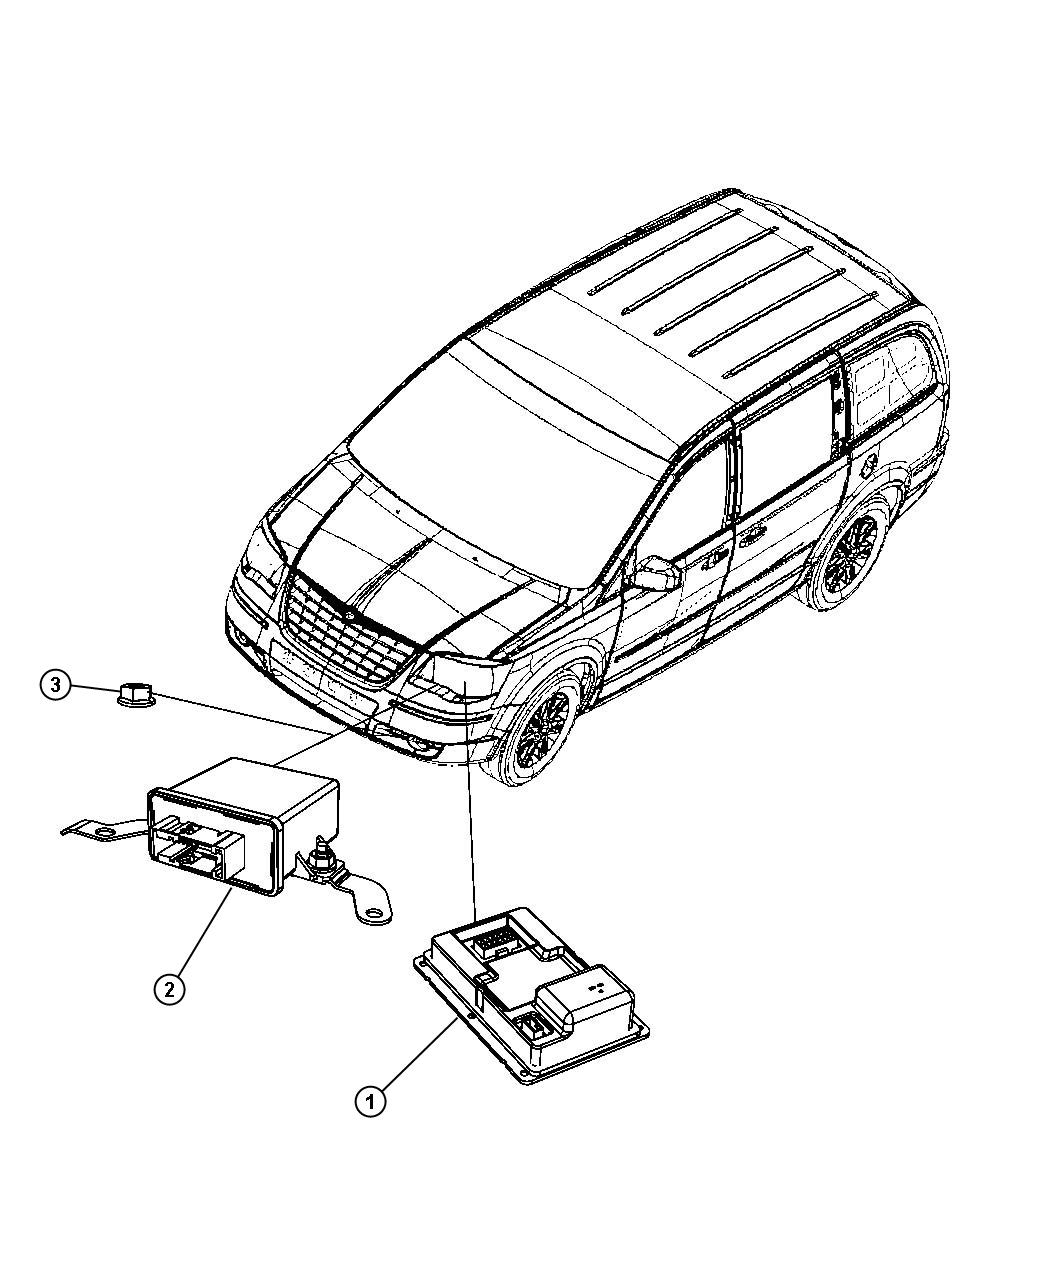 2010 Chrysler Town & Country Module. Hid ballast